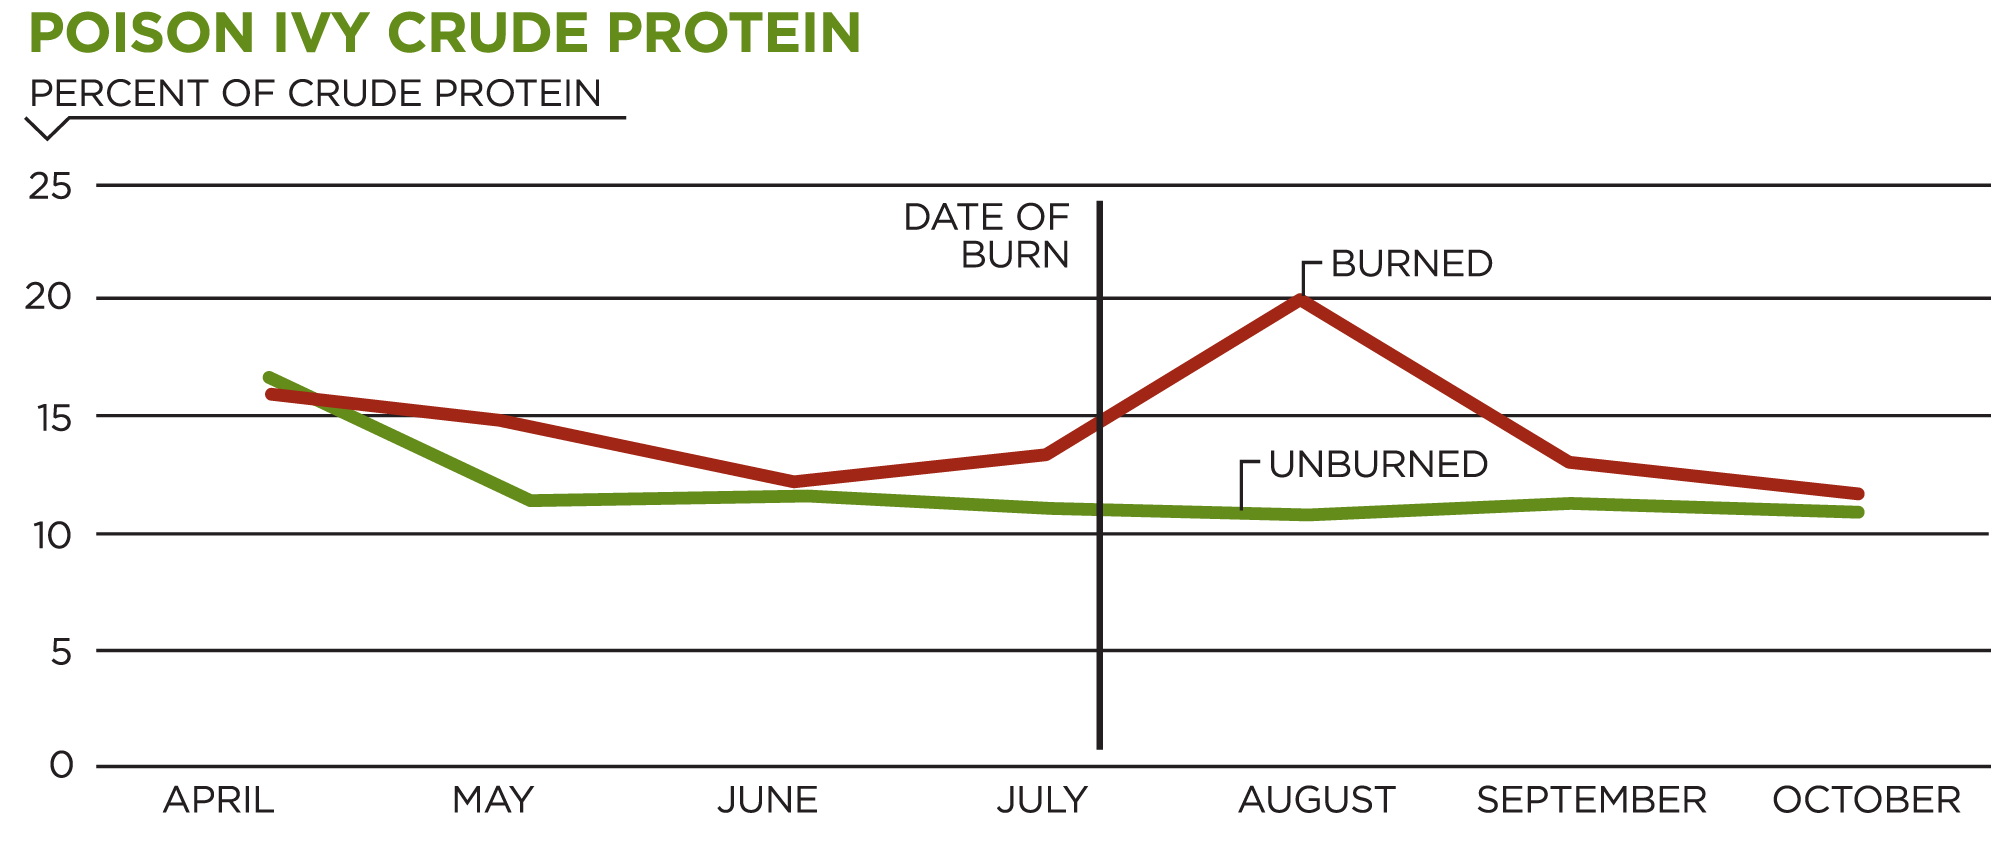 Poison Ivy Crude Protein Chart showing differences in crude protein in plants before and after growing season prescribed burns.